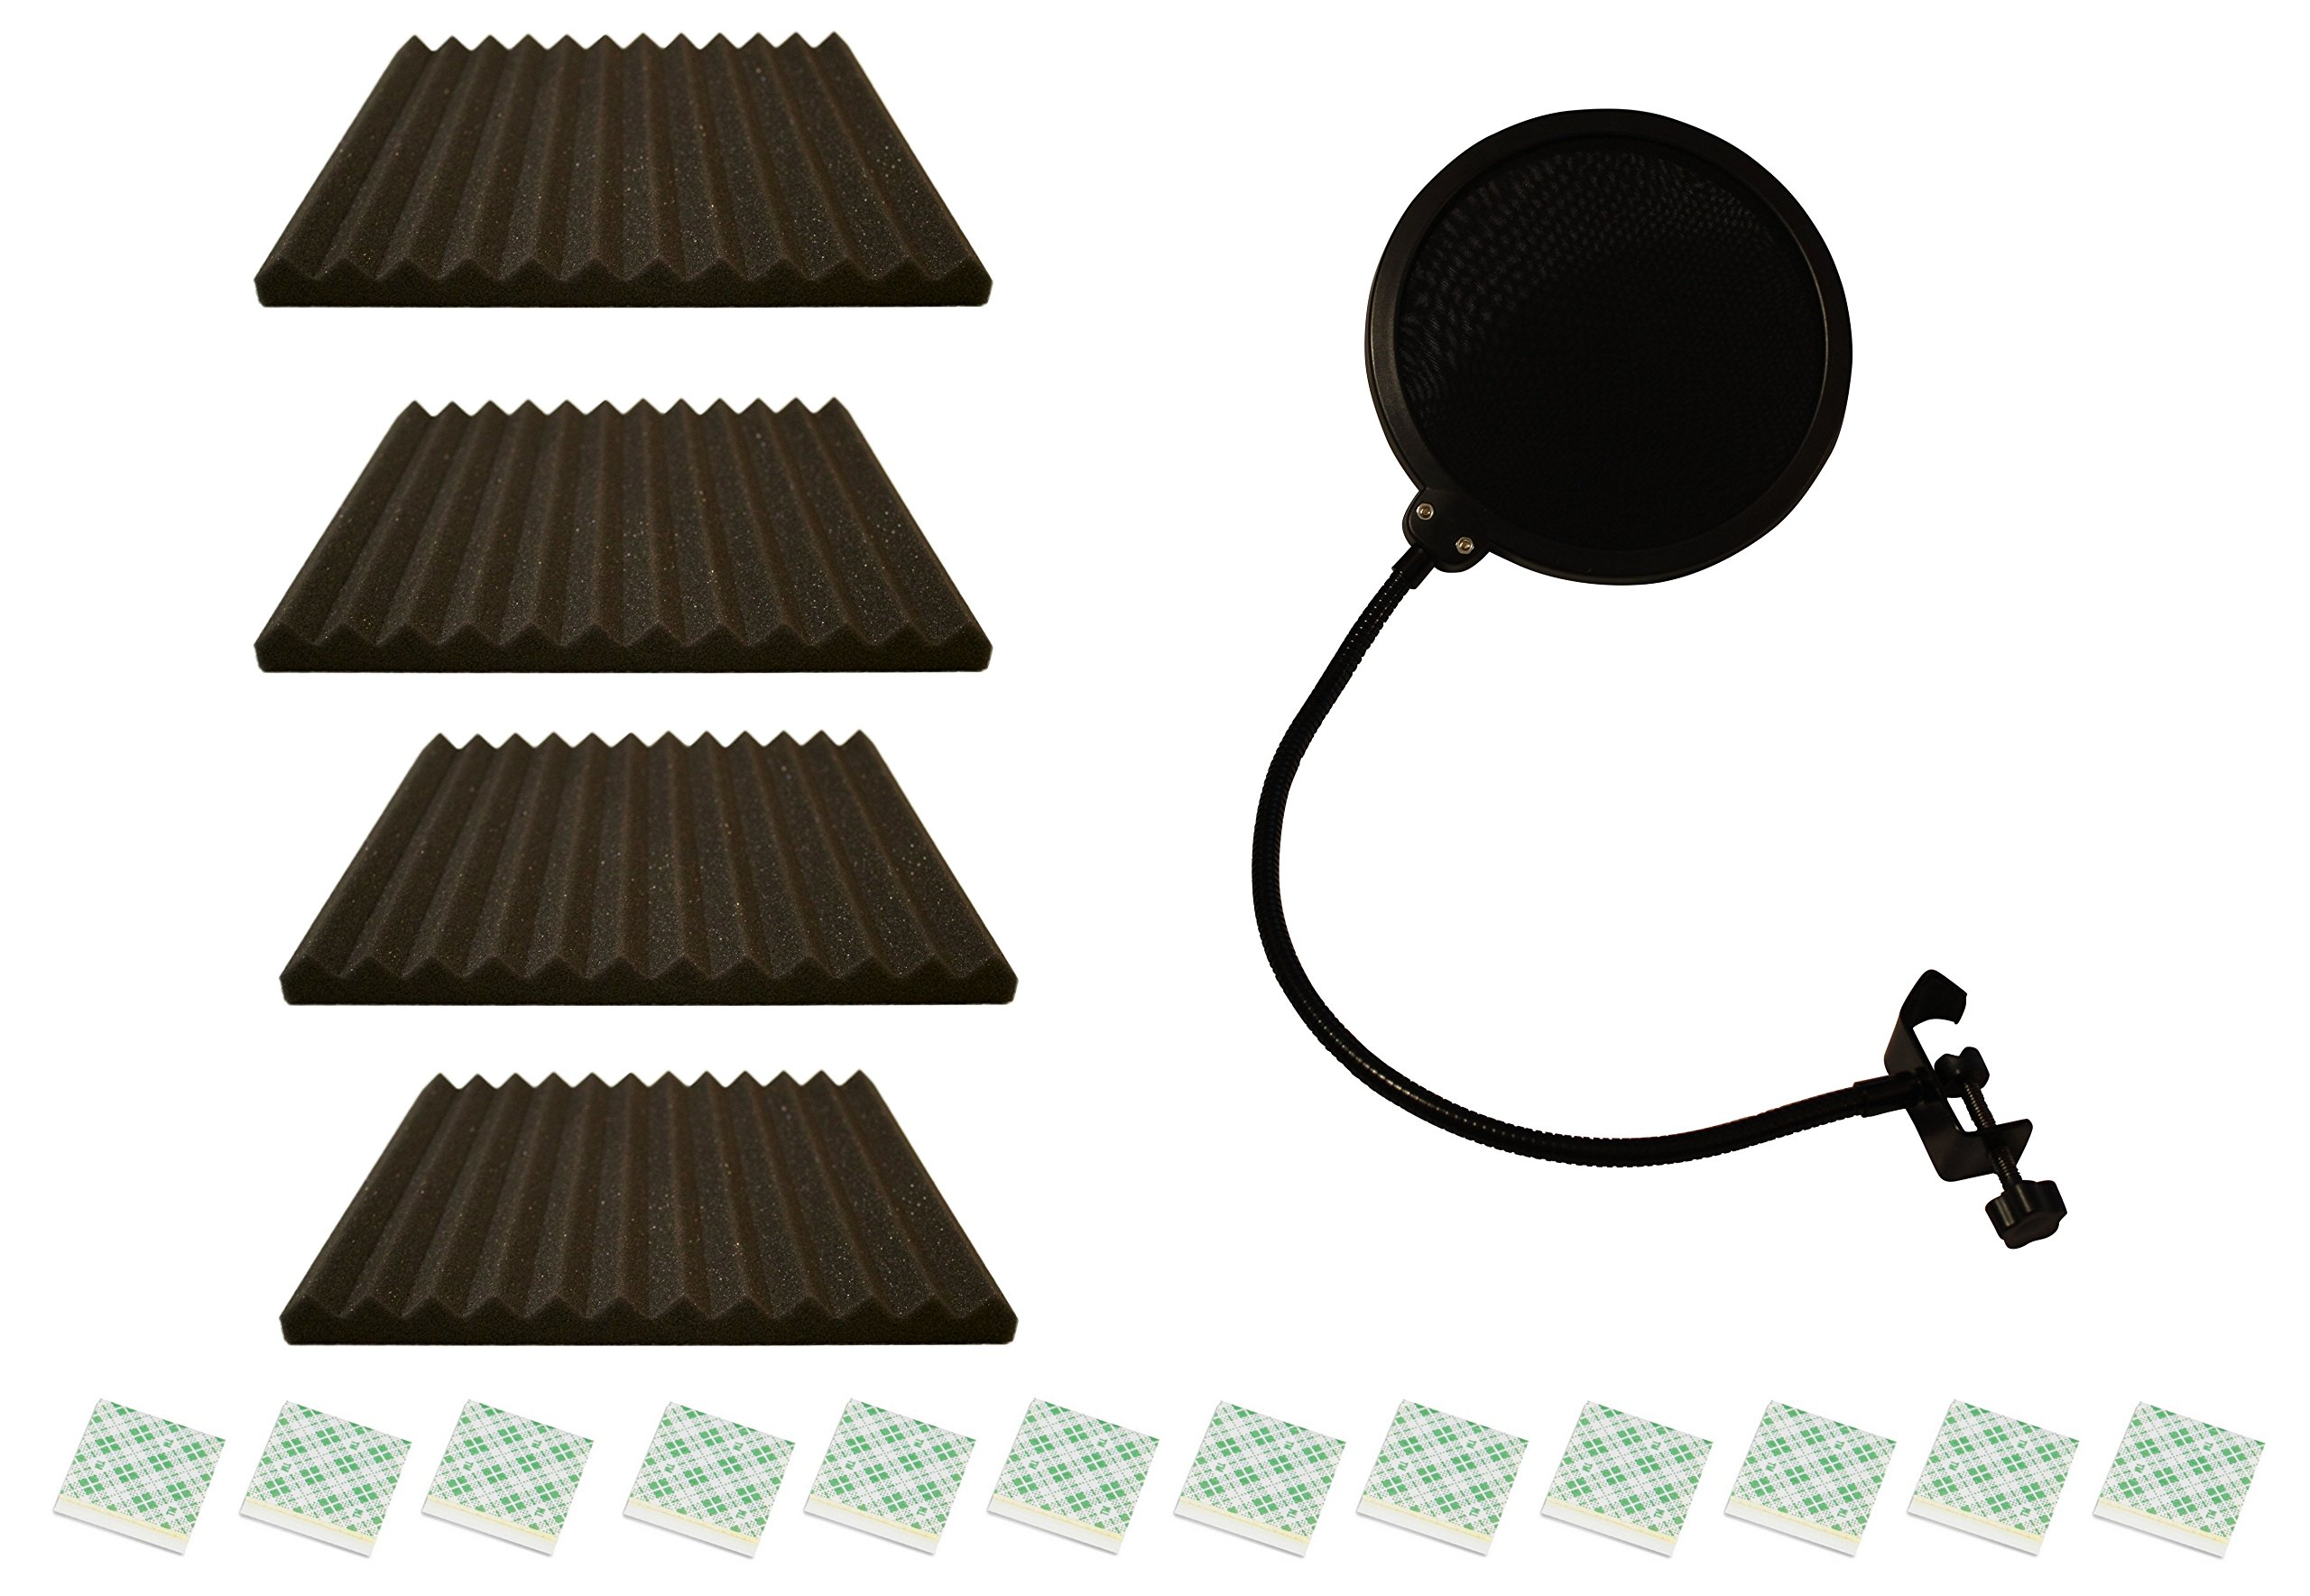 Pop Shield And Acoustic Foam For Studio Microphone Recording | Bundle Of 4 sq ft Soundproof Foam, 12 Adhesive Squares, and Pop Filter Mic Wind Screen